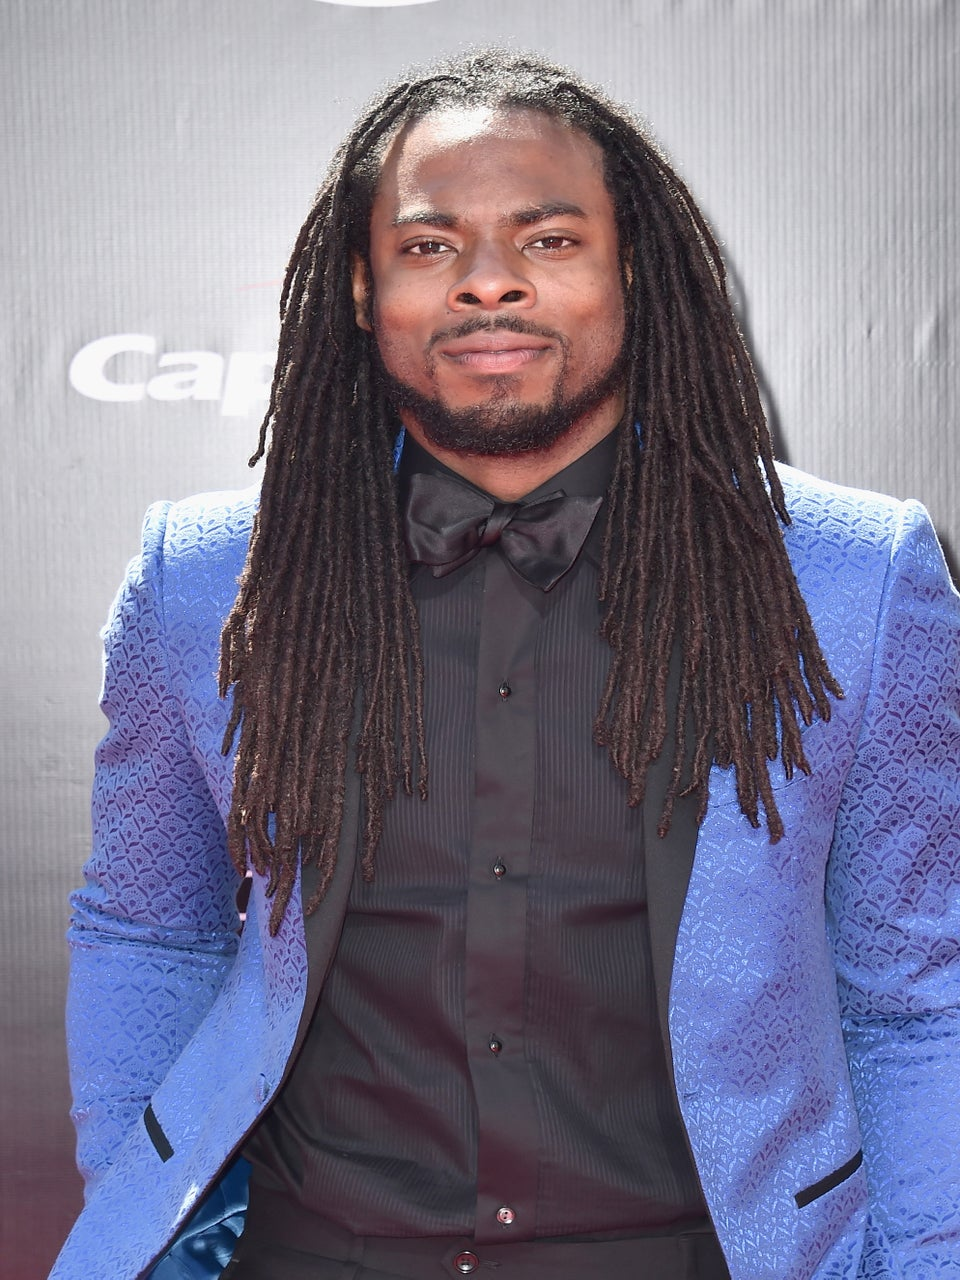 Seattle Seahawks' Richard Sherman Promised This High Schooler A Scholarship If She Made Honor Roll